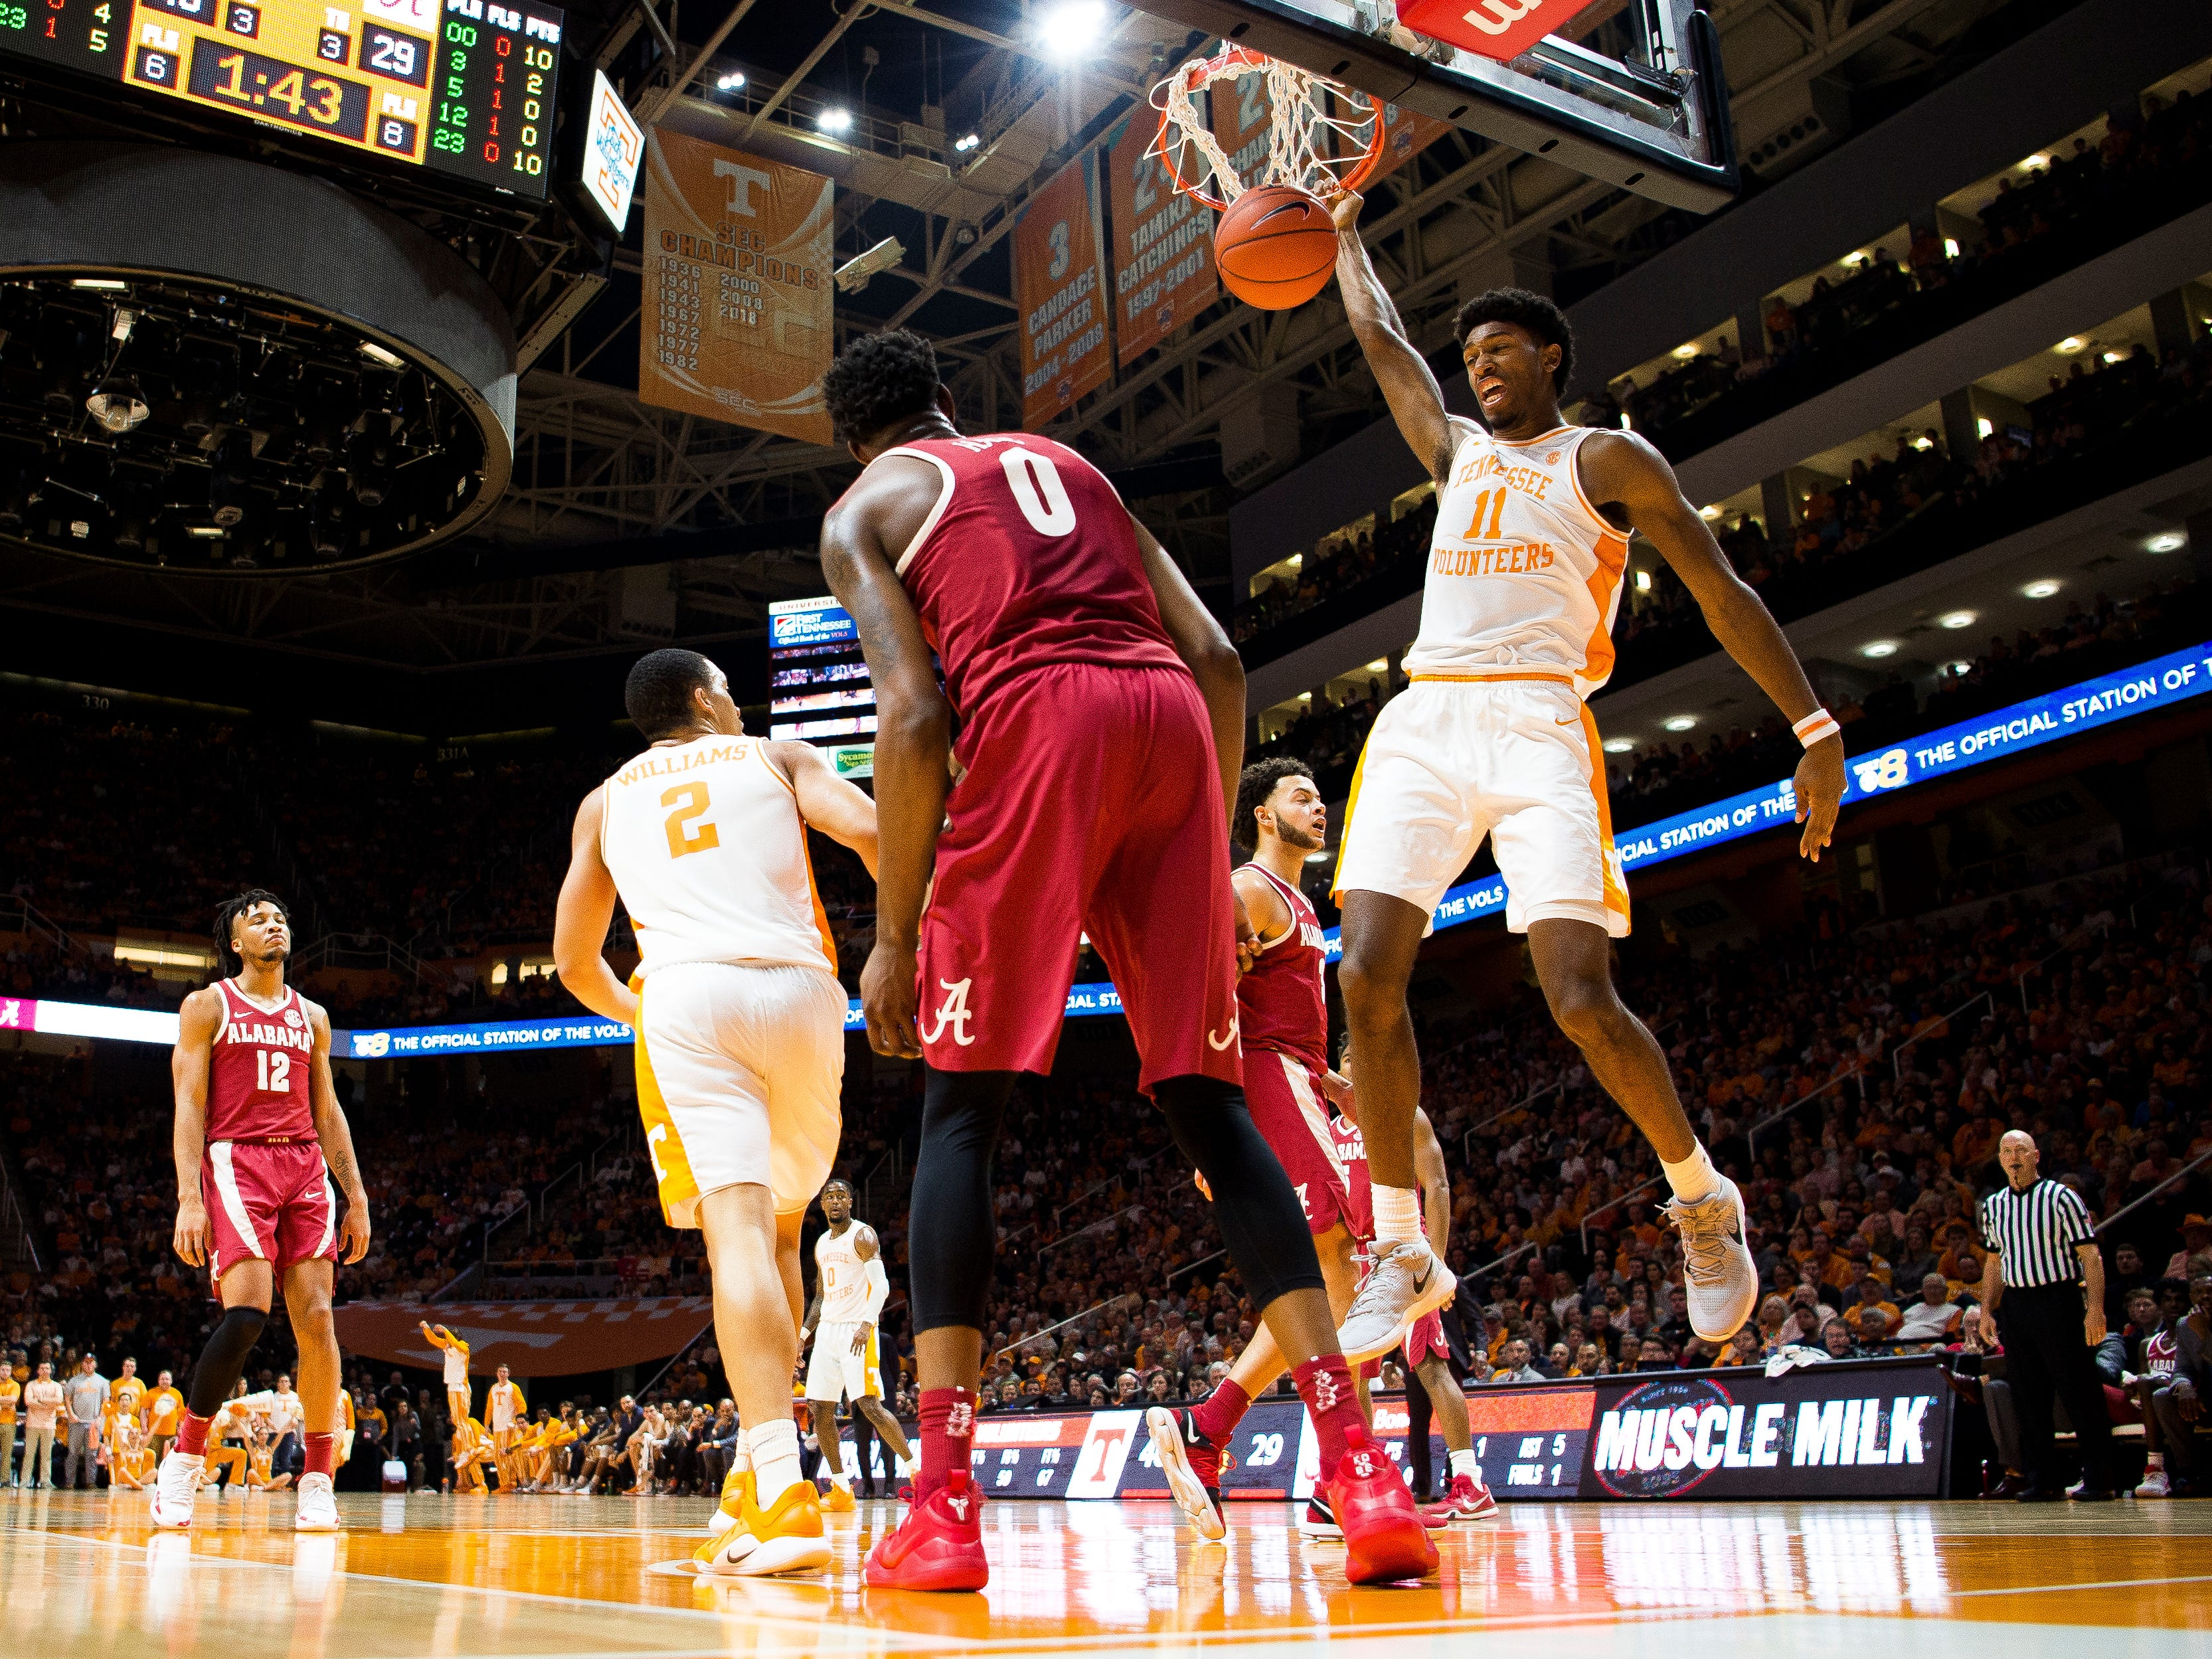 Tennessee forward Kyle Alexander (11) dunks the ball during the first half of Tennessee's home SEC conference game against Alabama at Thompson-Boling Arena in Knoxville on Saturday, January 19, 2019.